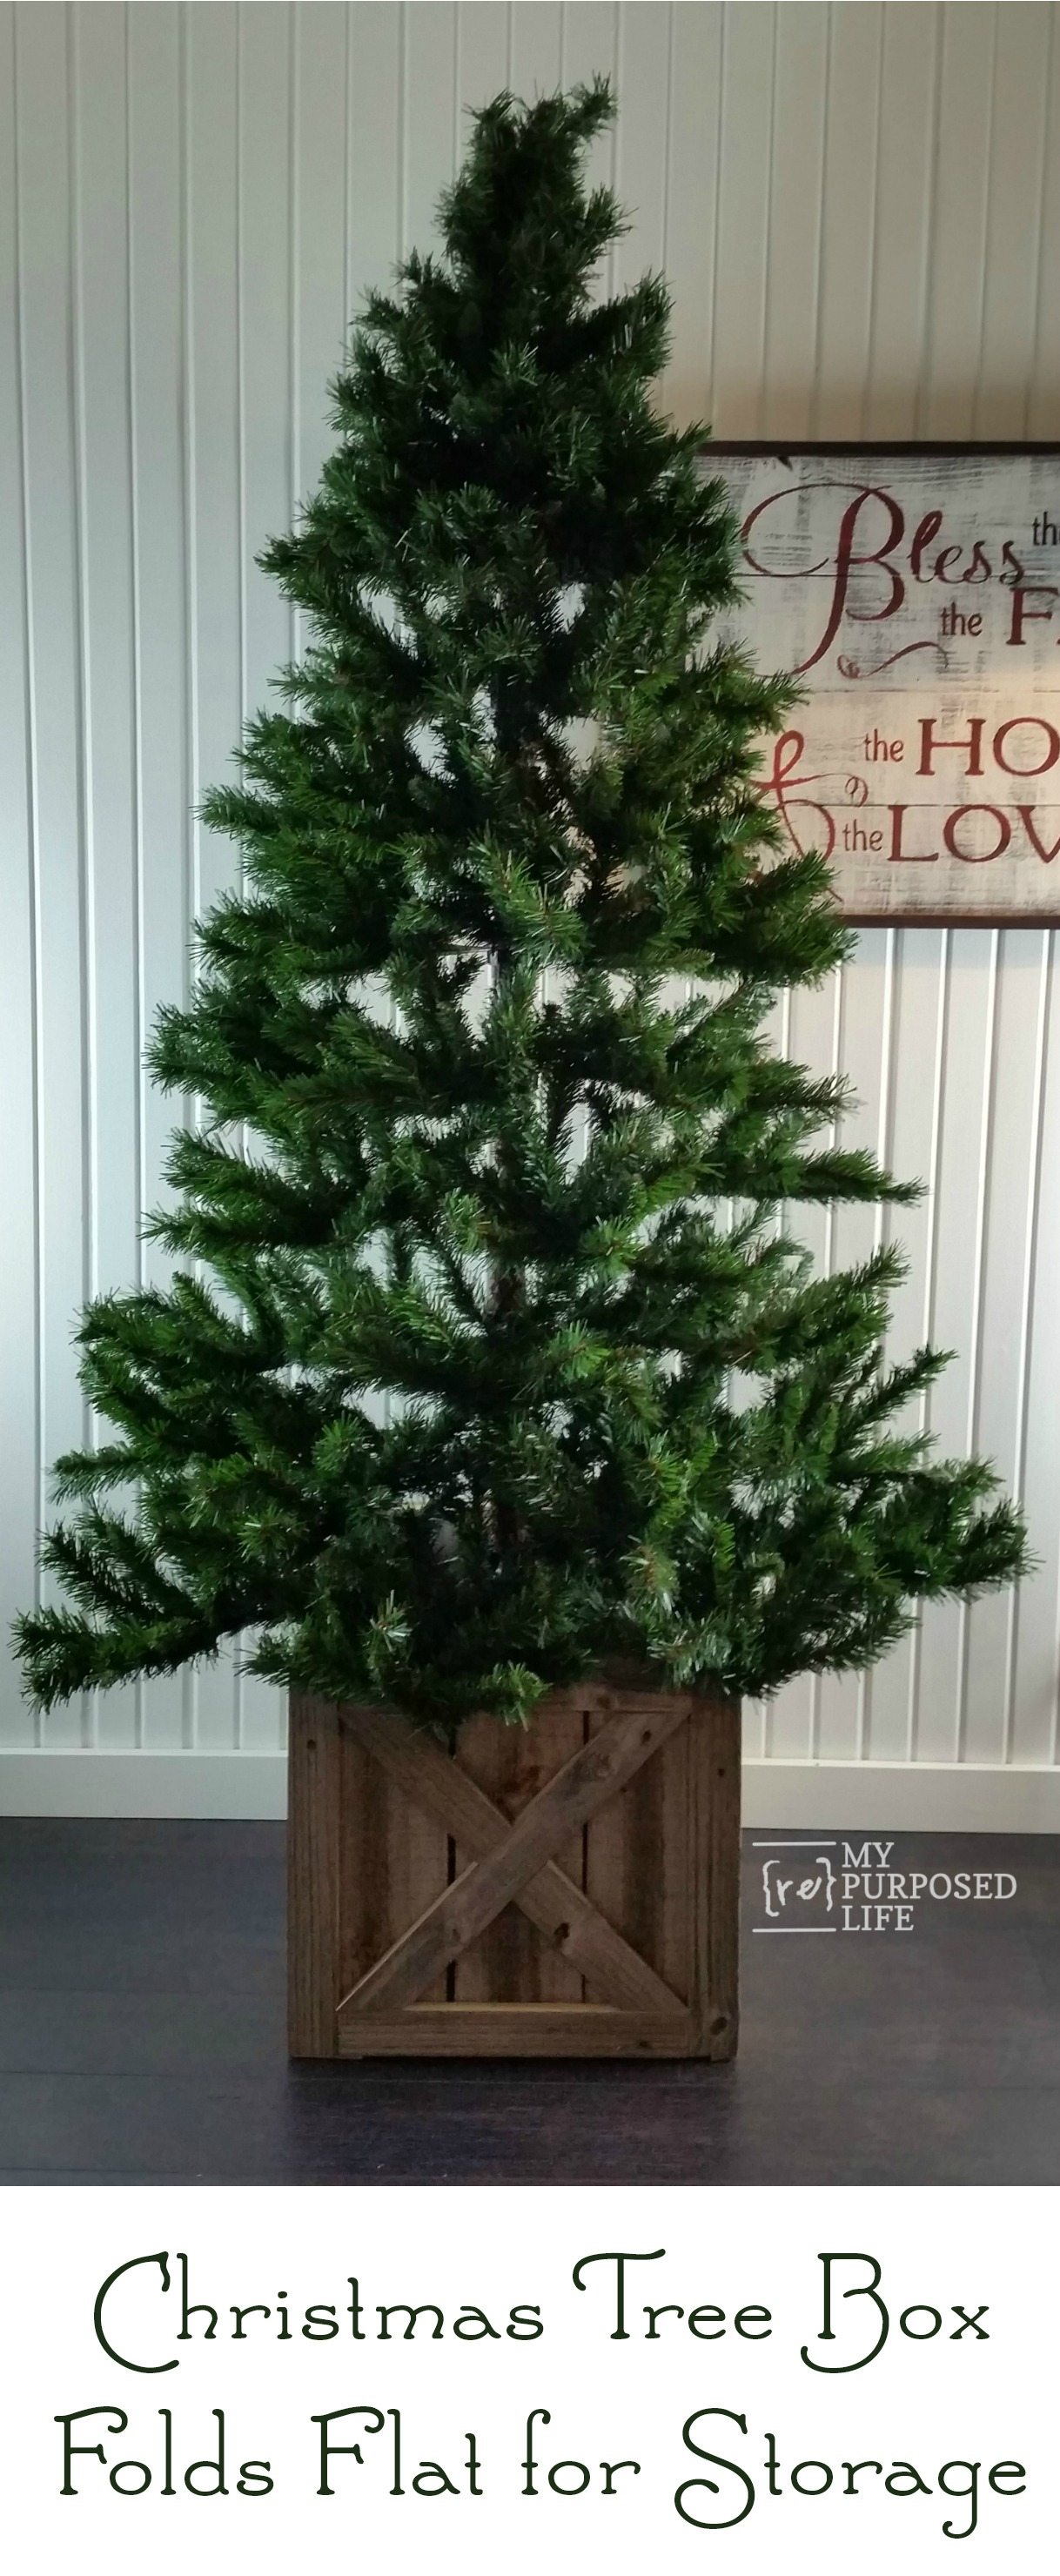 Christmas Tree Stand Box | Folds Flat for Storage - My ...